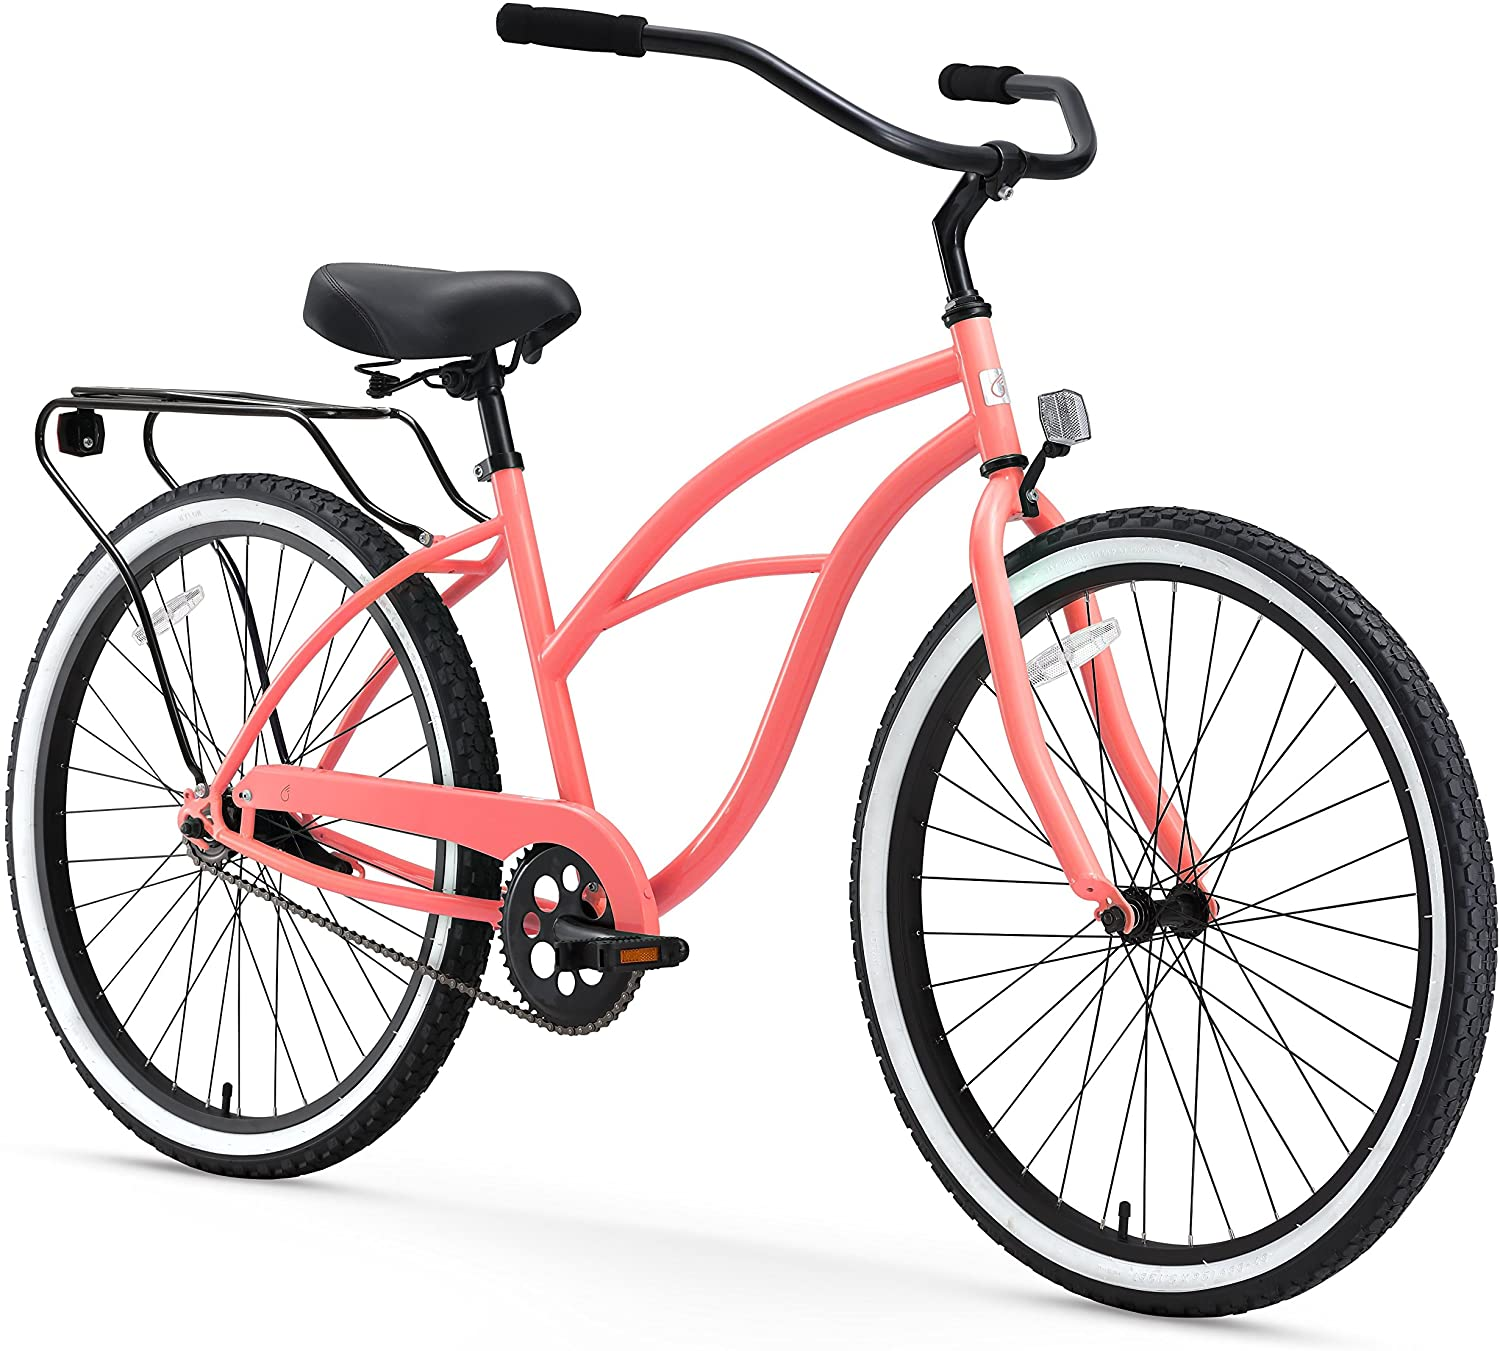 sixthreezero Around The Block Women's Cruiser Commuter Bike, 26-Inch